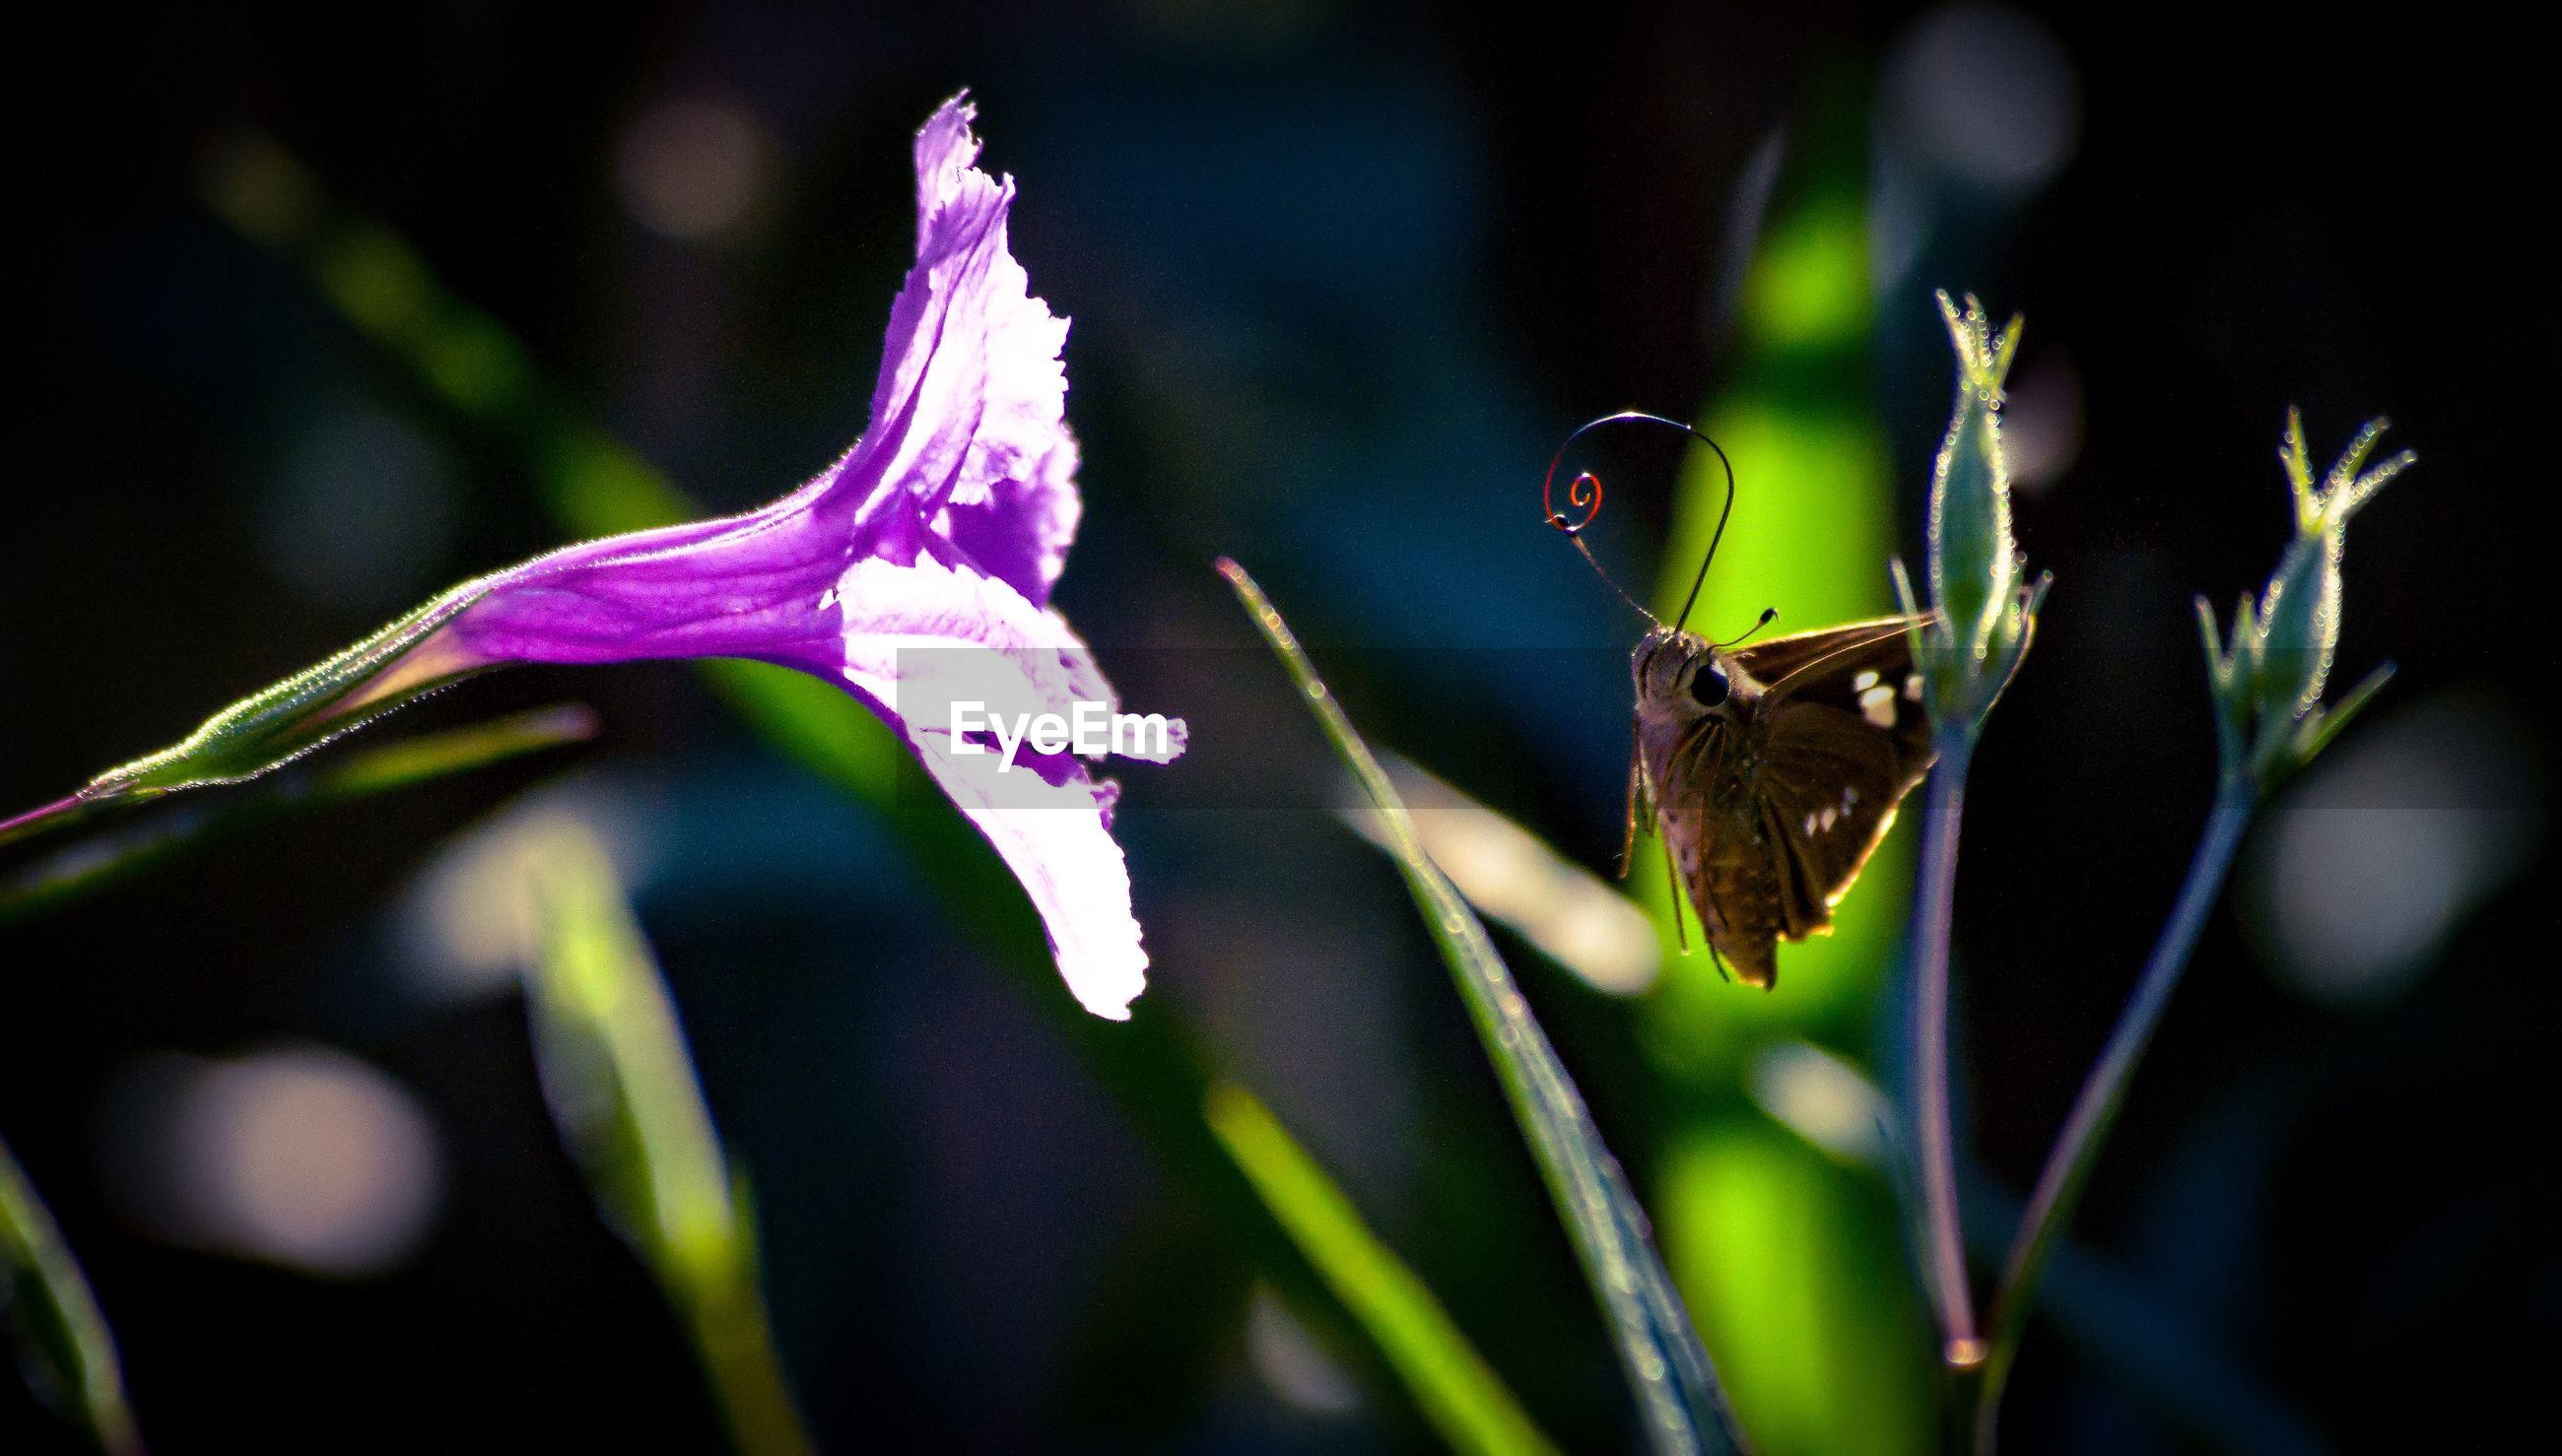 Close-up of butterfly in front of purple flower